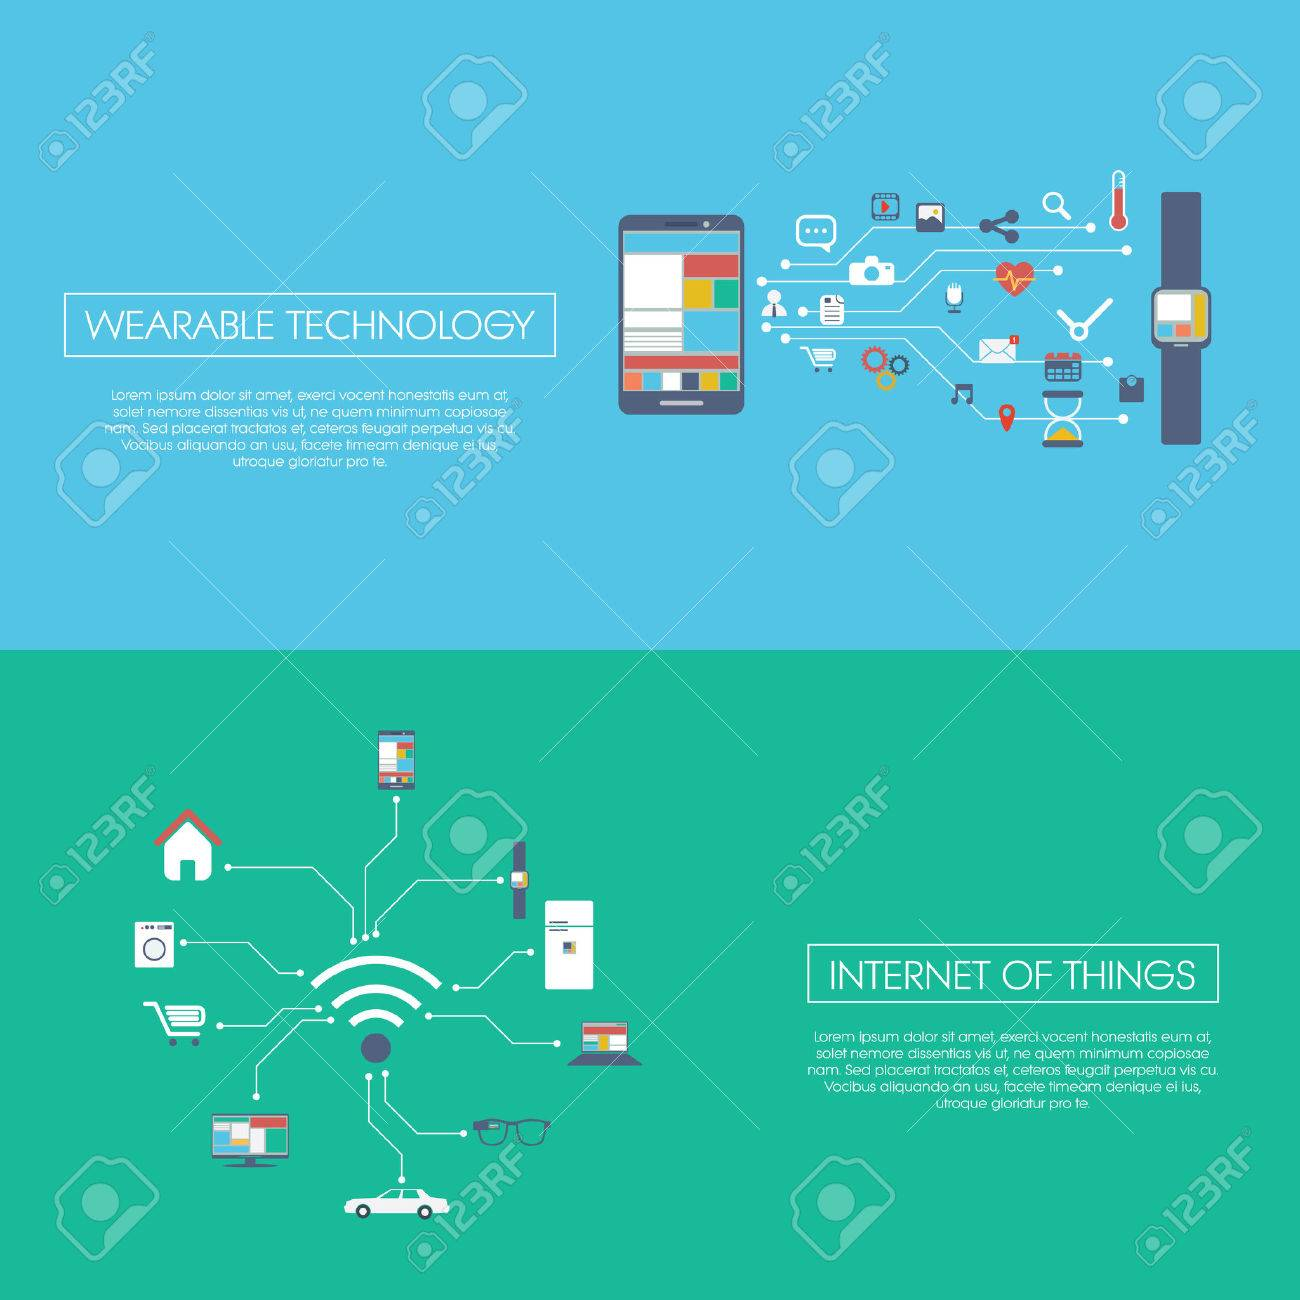 Internet of things concept vector illustration with icons for smart devices in household, technology, communication. - 36304389